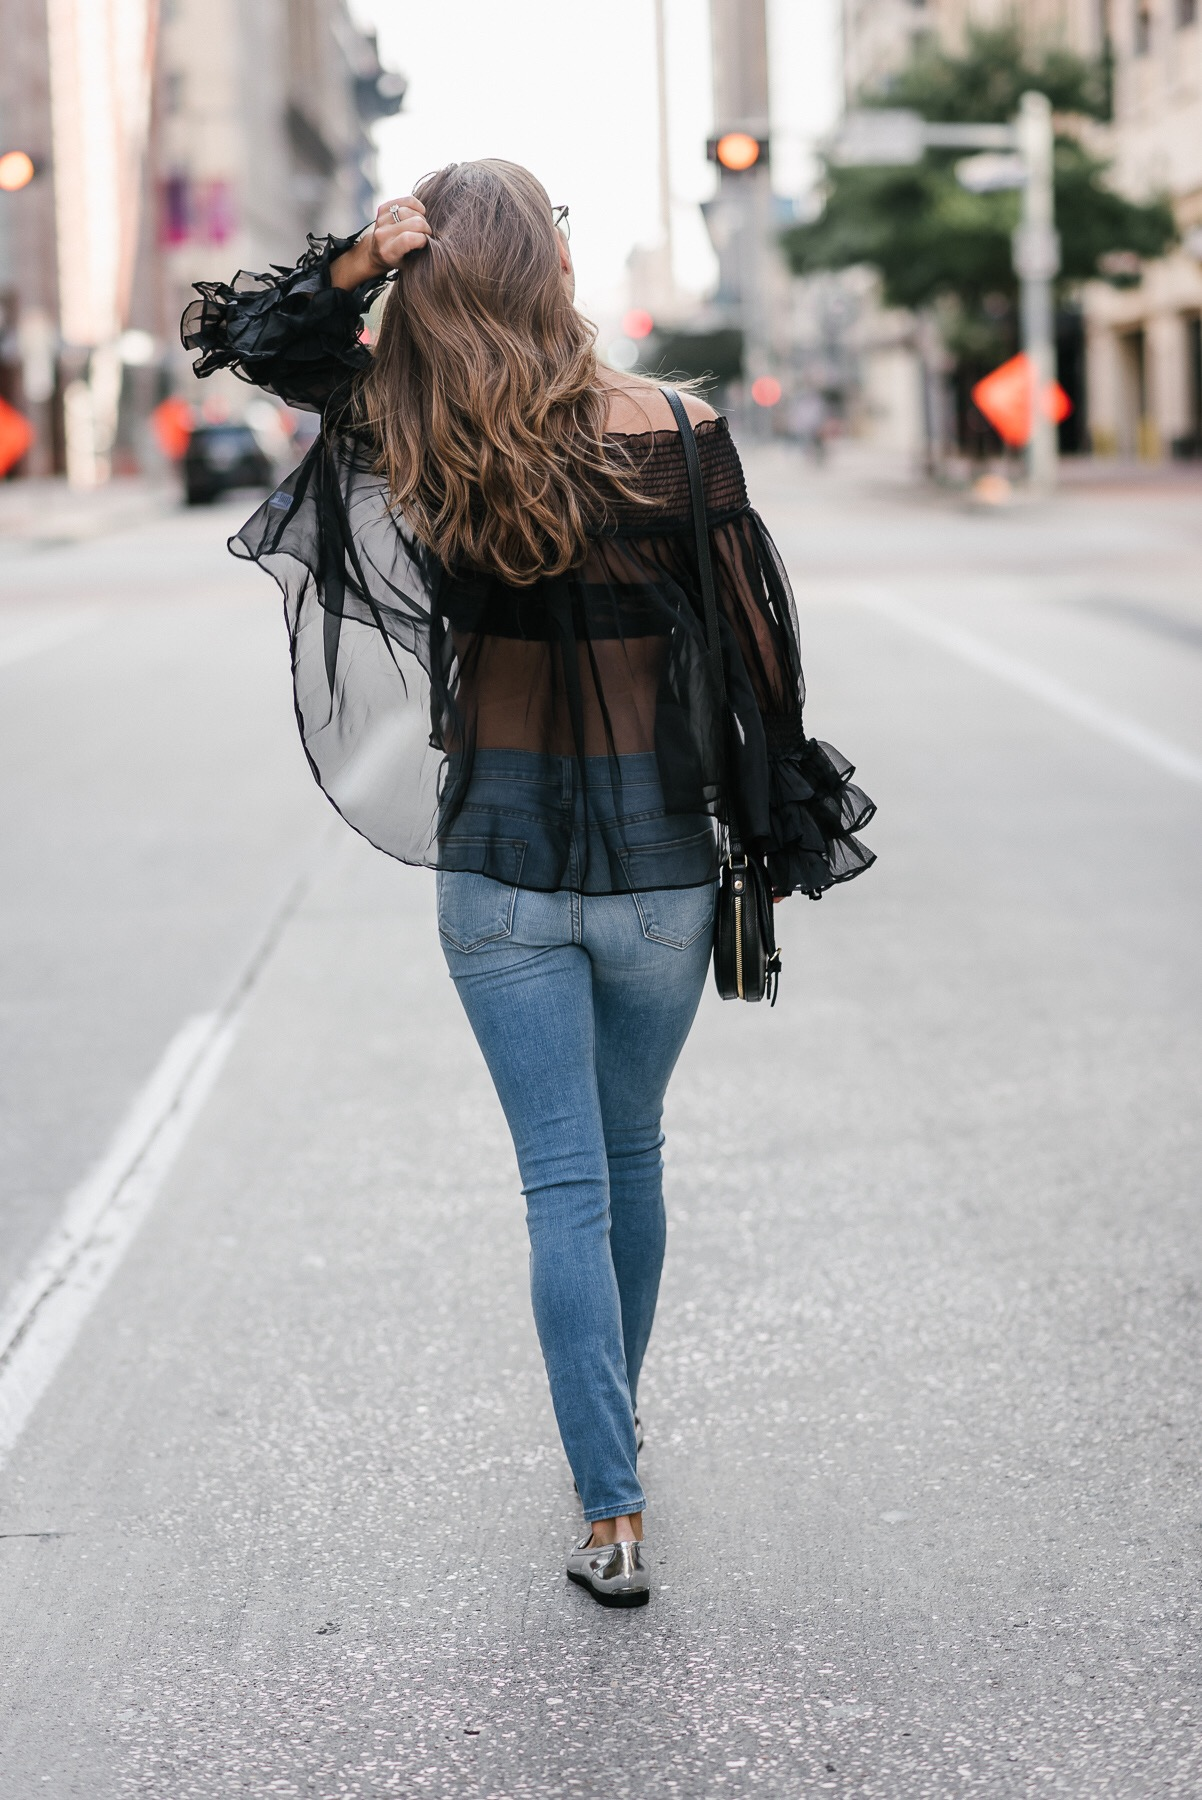 Showing the backsode of sheer top on fashion blogger and jeans from DSTLD